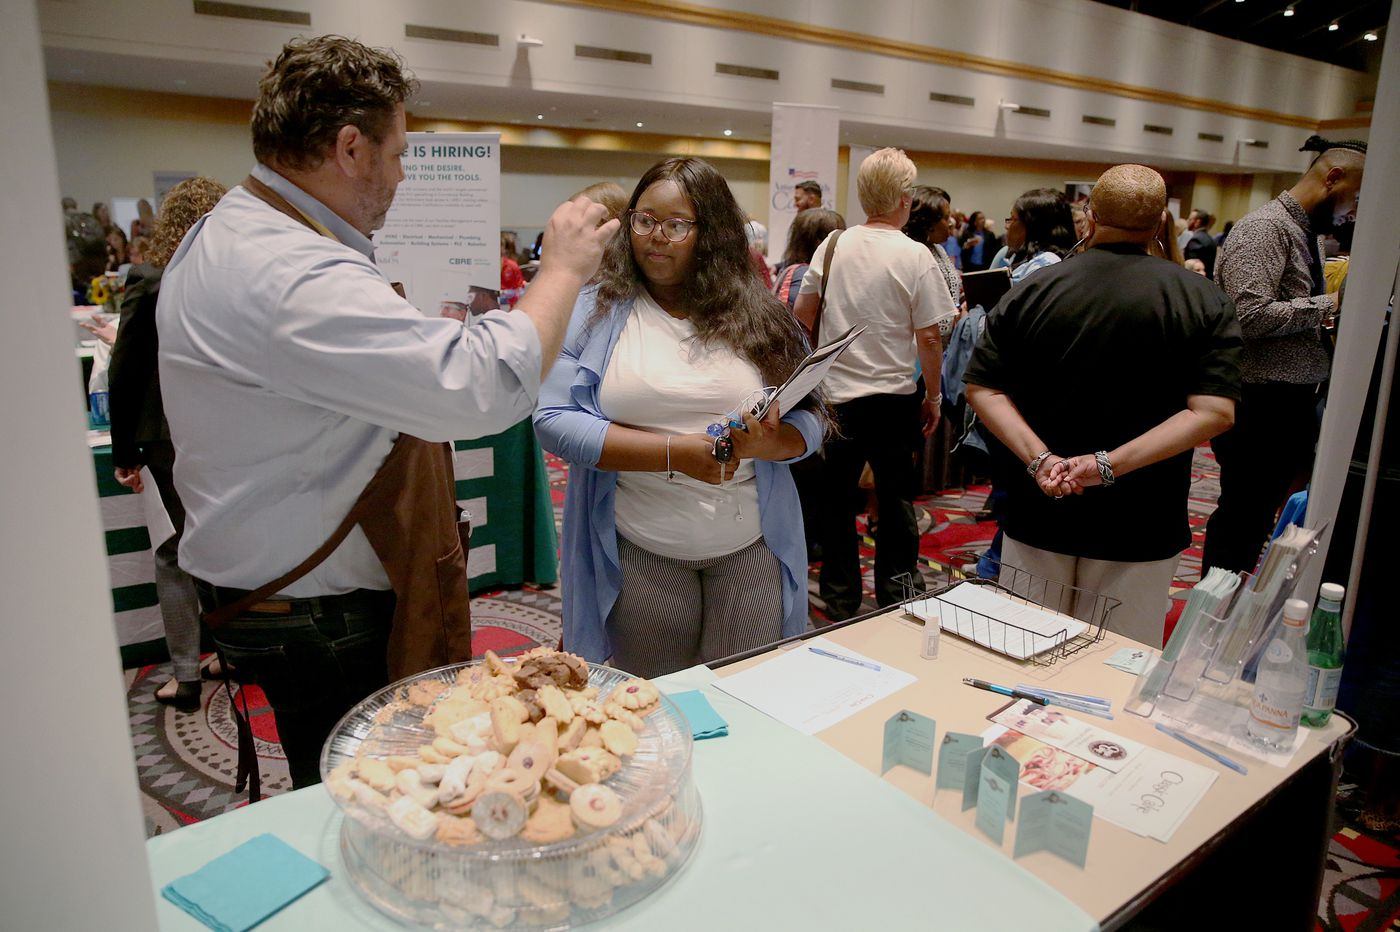 Starting Sept. 1, Philly employers can no longer ask job applicants their salary history